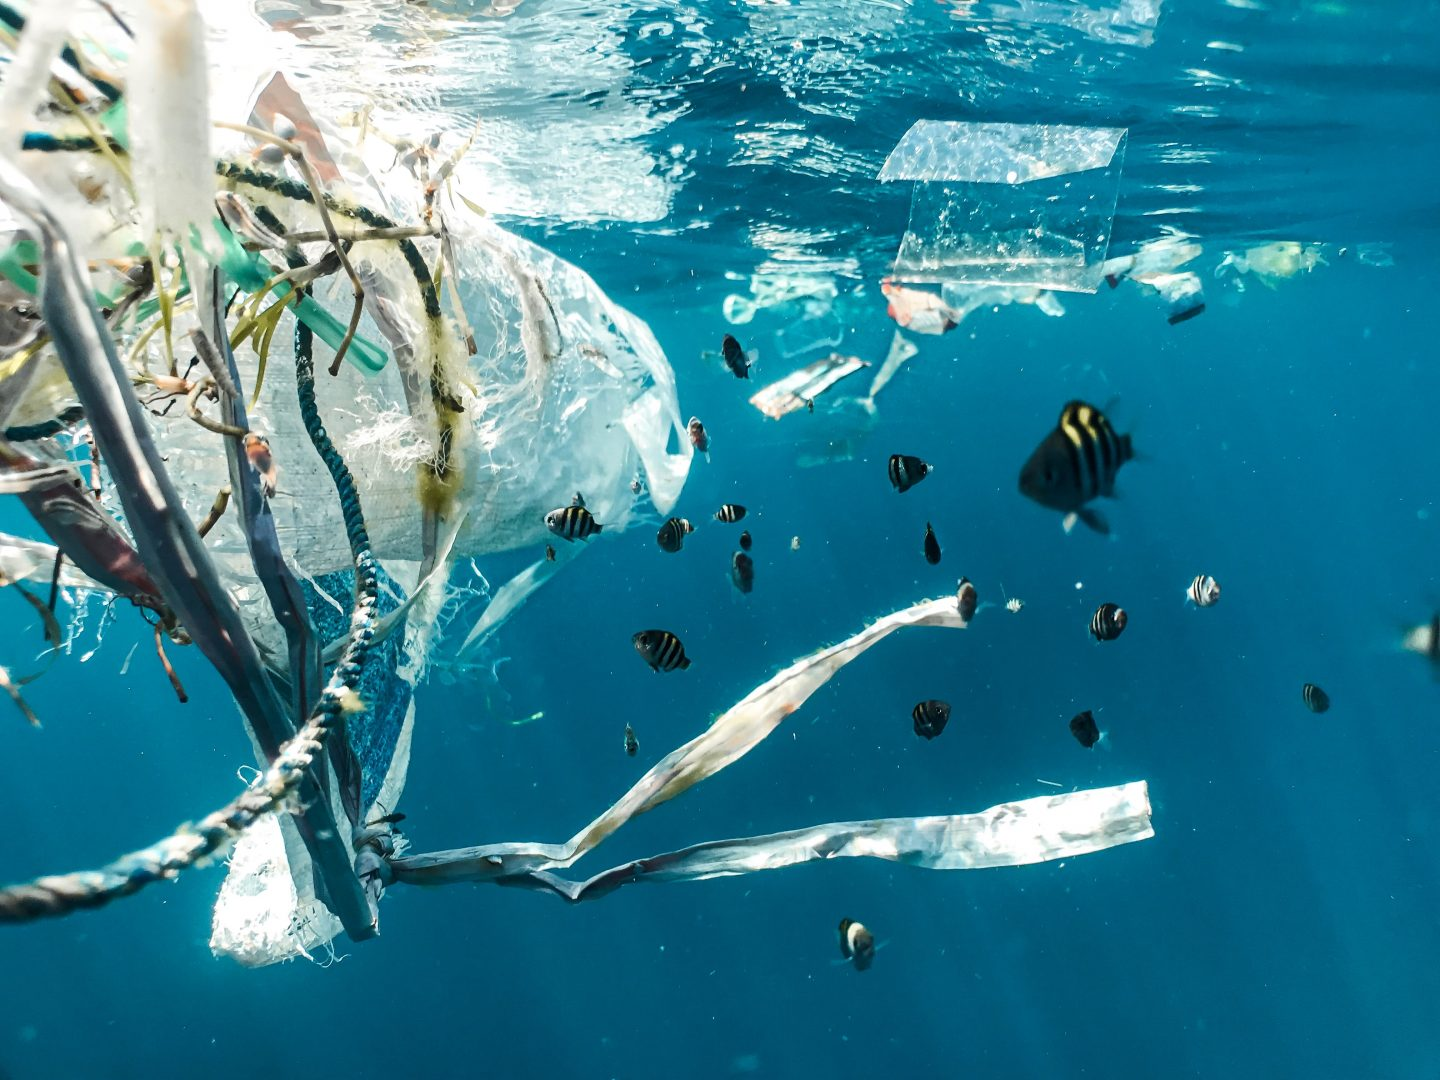 10 Facts About Single-Use Plastic Bags